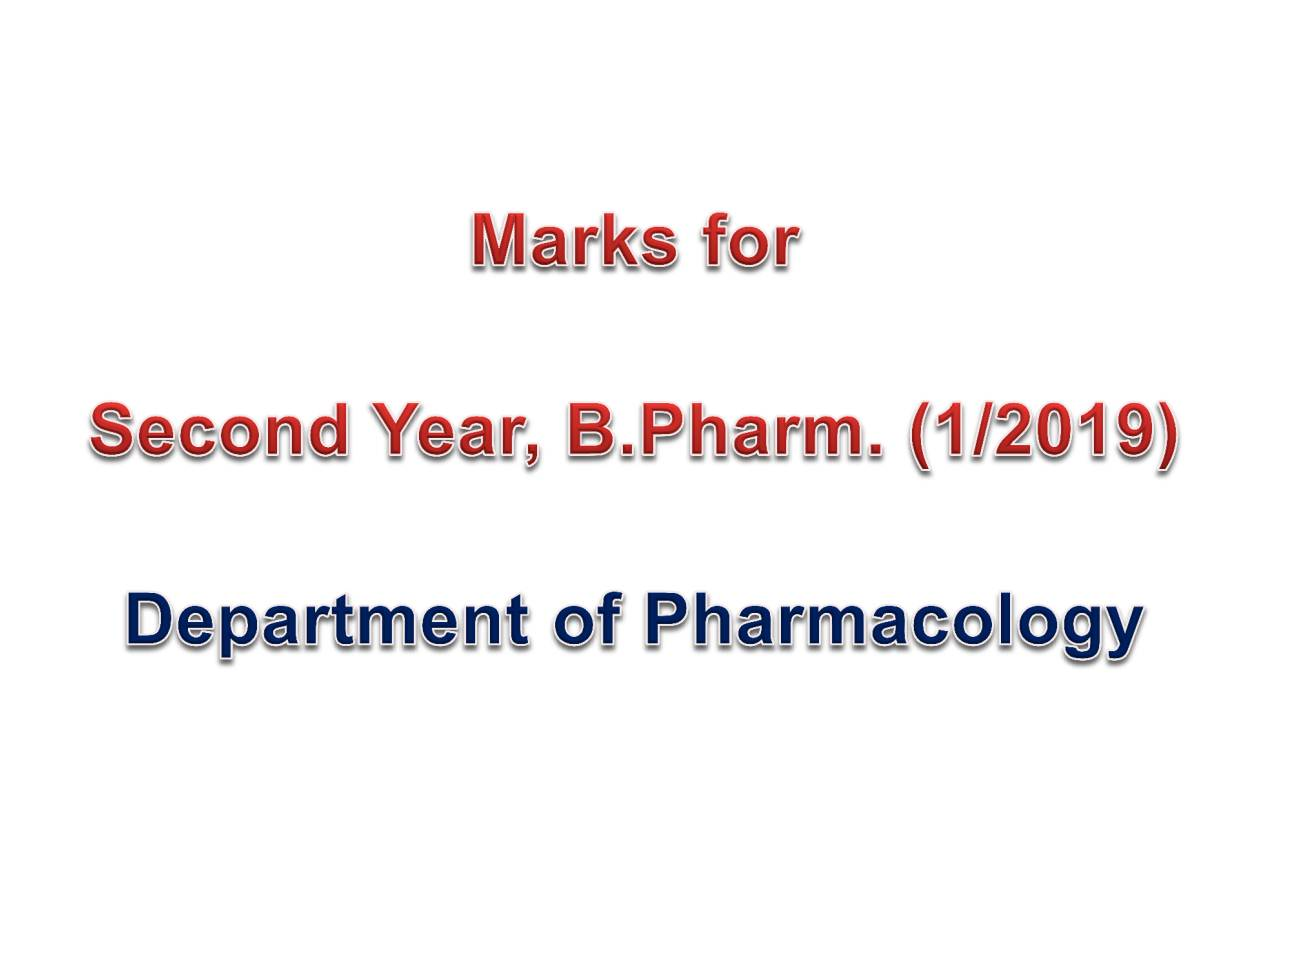 Marks for Second Year, B.Pharm. (1/2019)